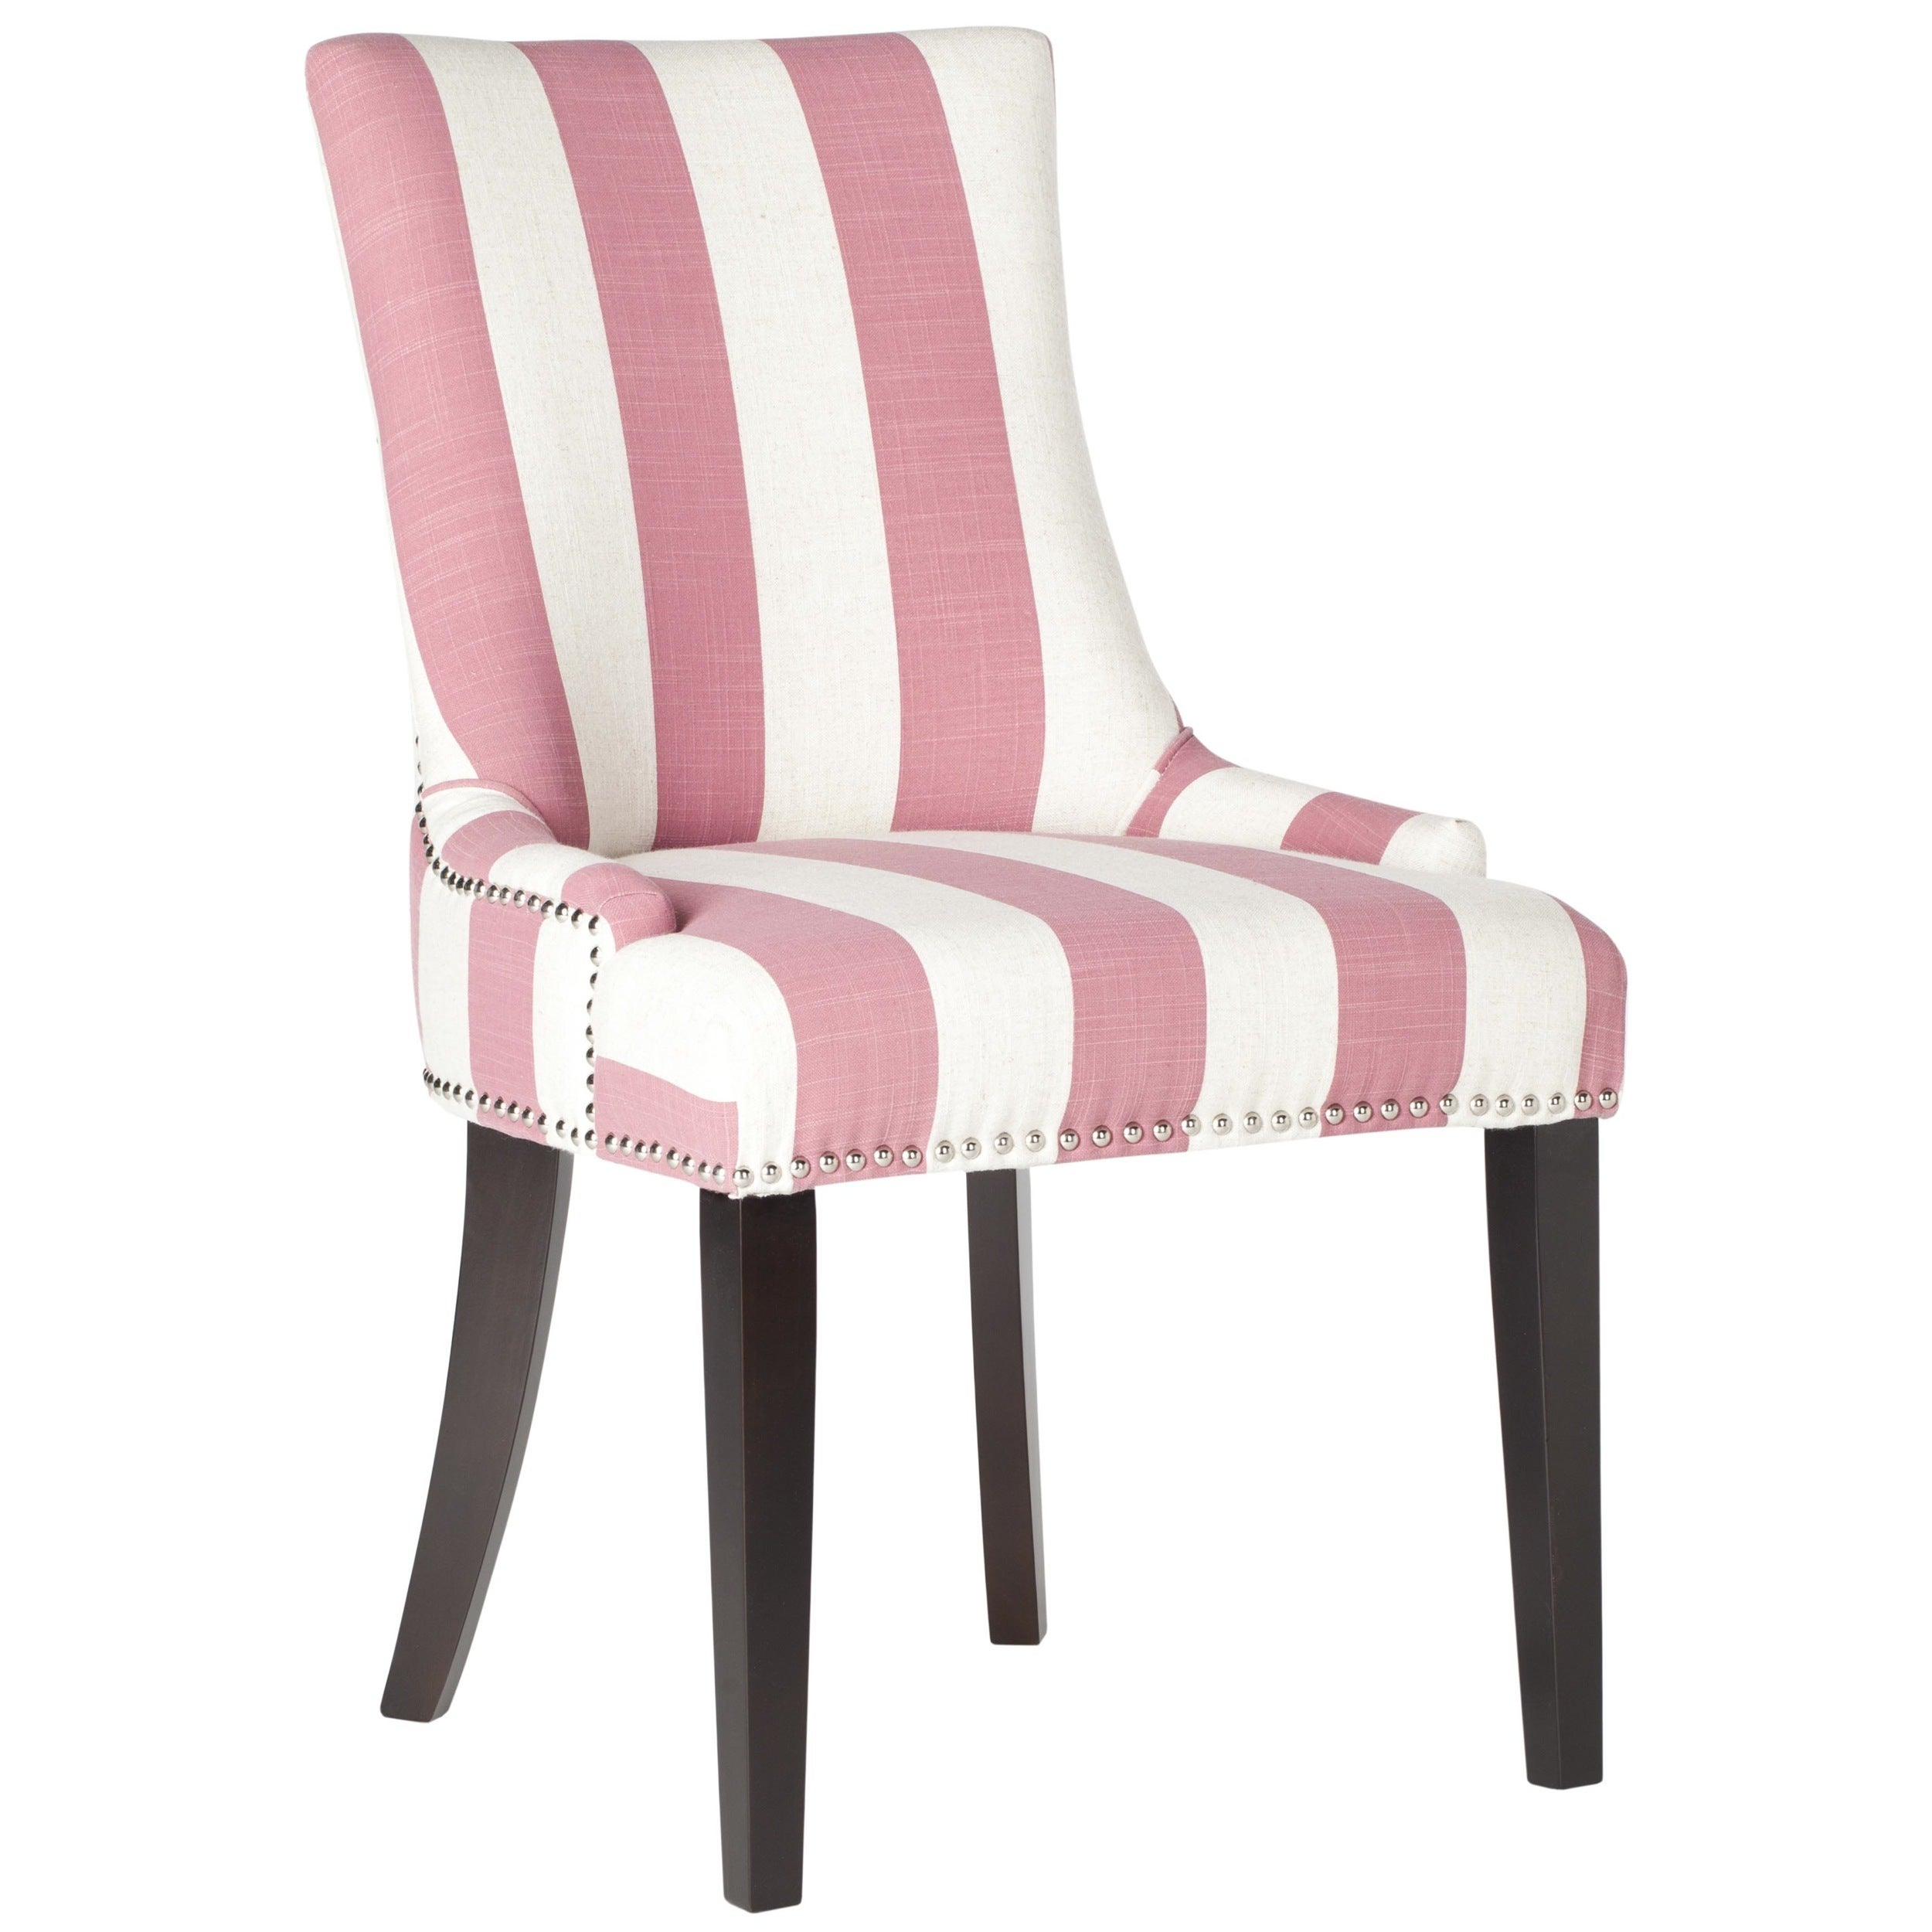 Safavieh En Vogue Dining Lester Pink/White Stripe Dining Chairs (Set Of 2)    Free Shipping Today   Overstock.com   16245806